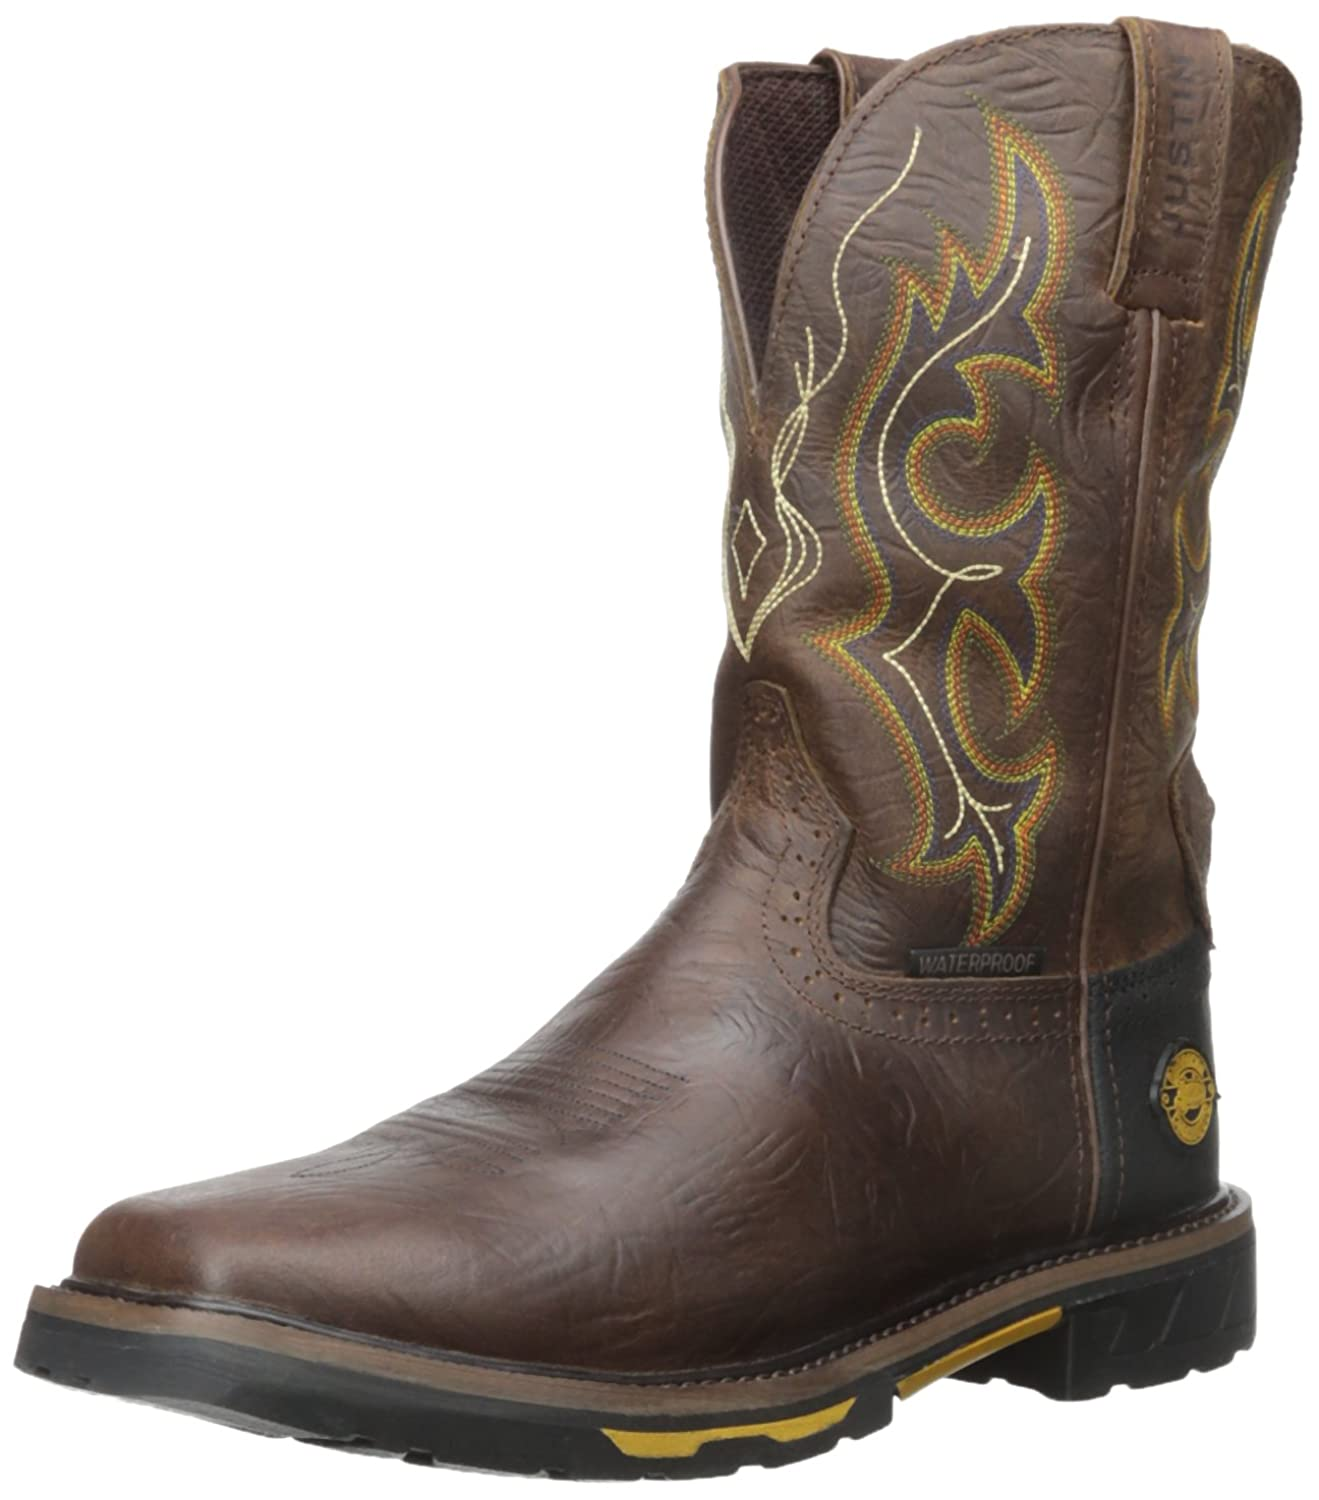 Justin Original Work Men's Rustic Barnwood Hybred Waterproof-M Workboot